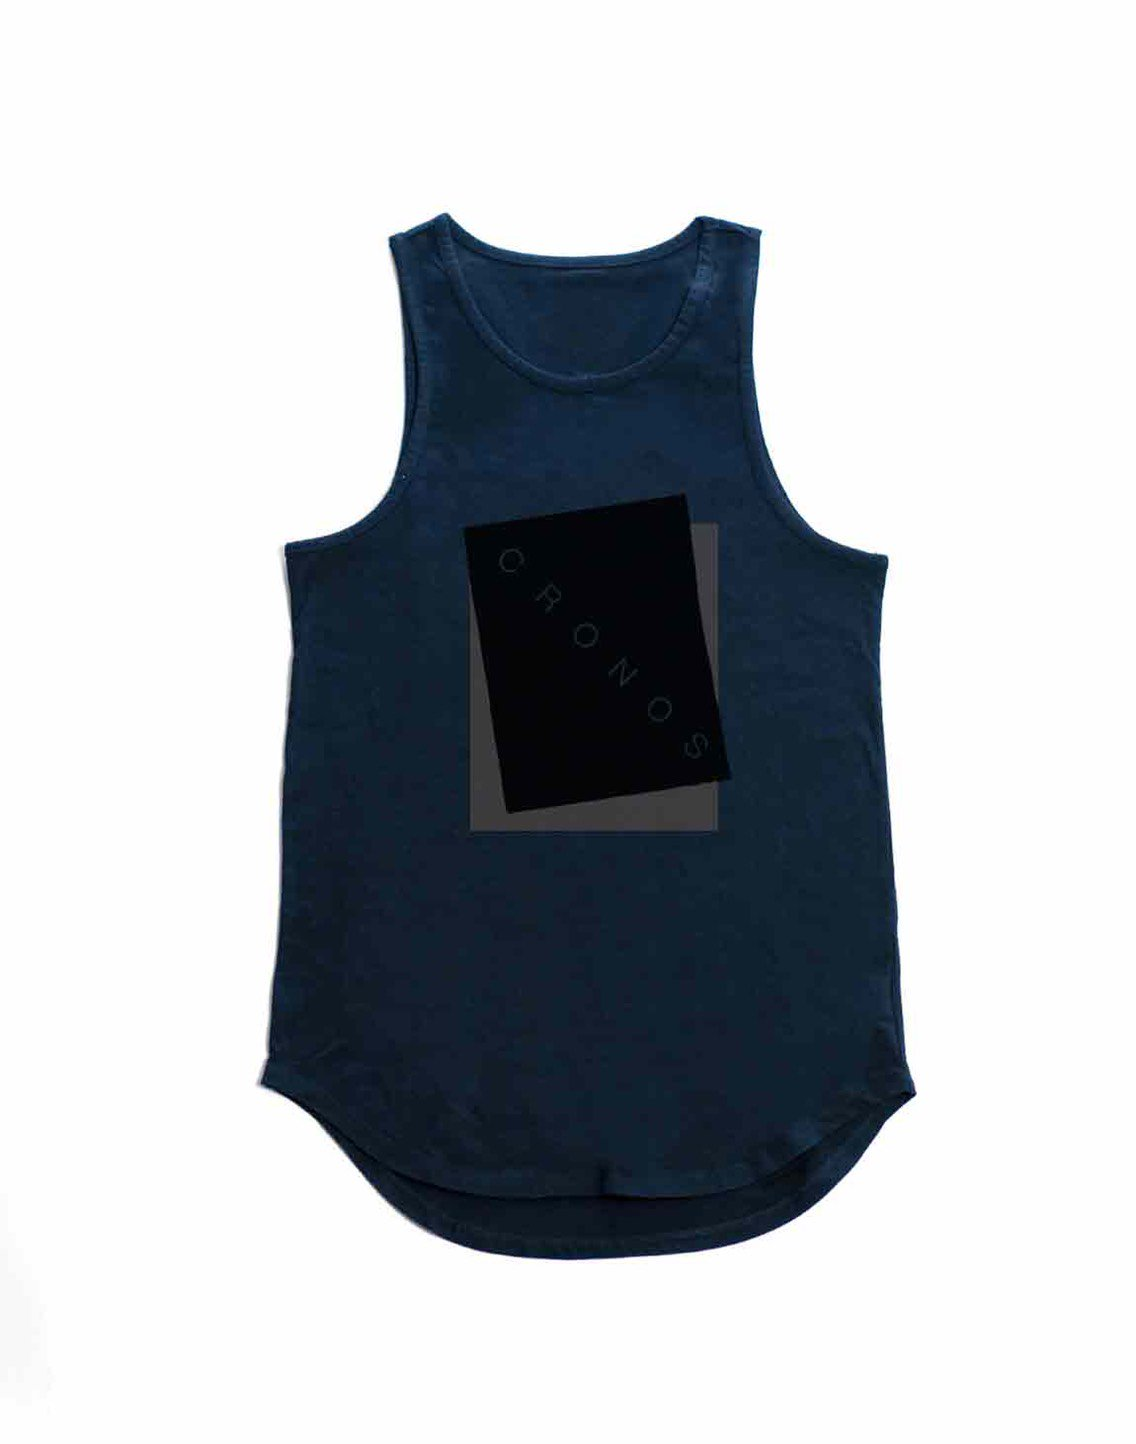 <img class='new_mark_img1' src='https://img.shop-pro.jp/img/new/icons55.gif' style='border:none;display:inline;margin:0px;padding:0px;width:auto;' />CRONOS NEW BOX LOGO TANKTOP【NAVY】